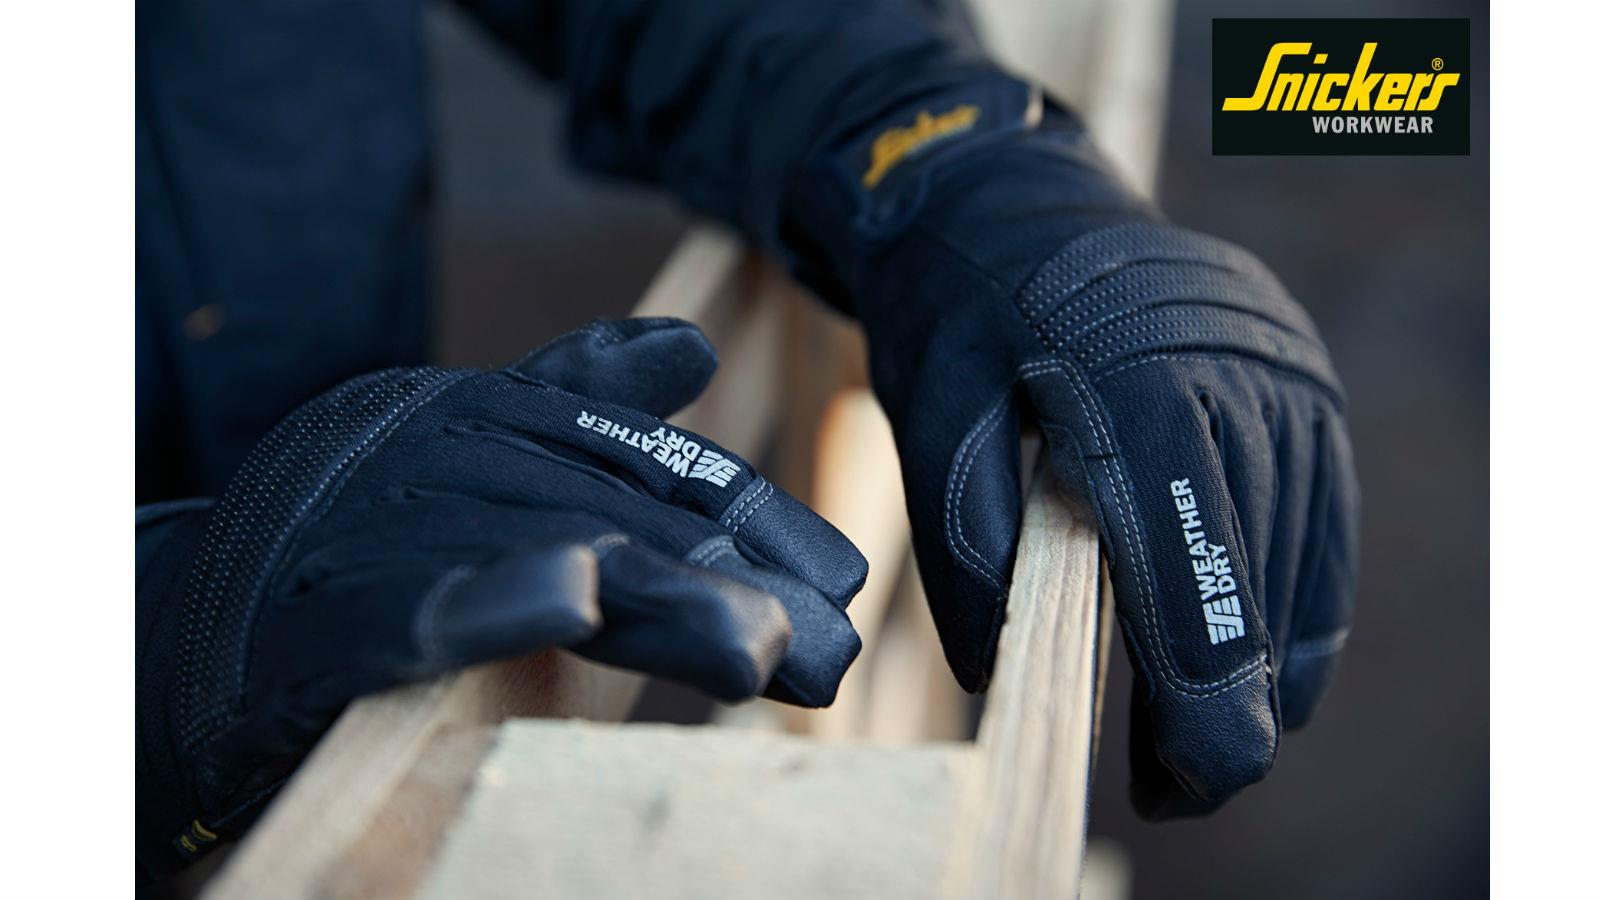 Snickers' Work Gloves For Healthy Hands image